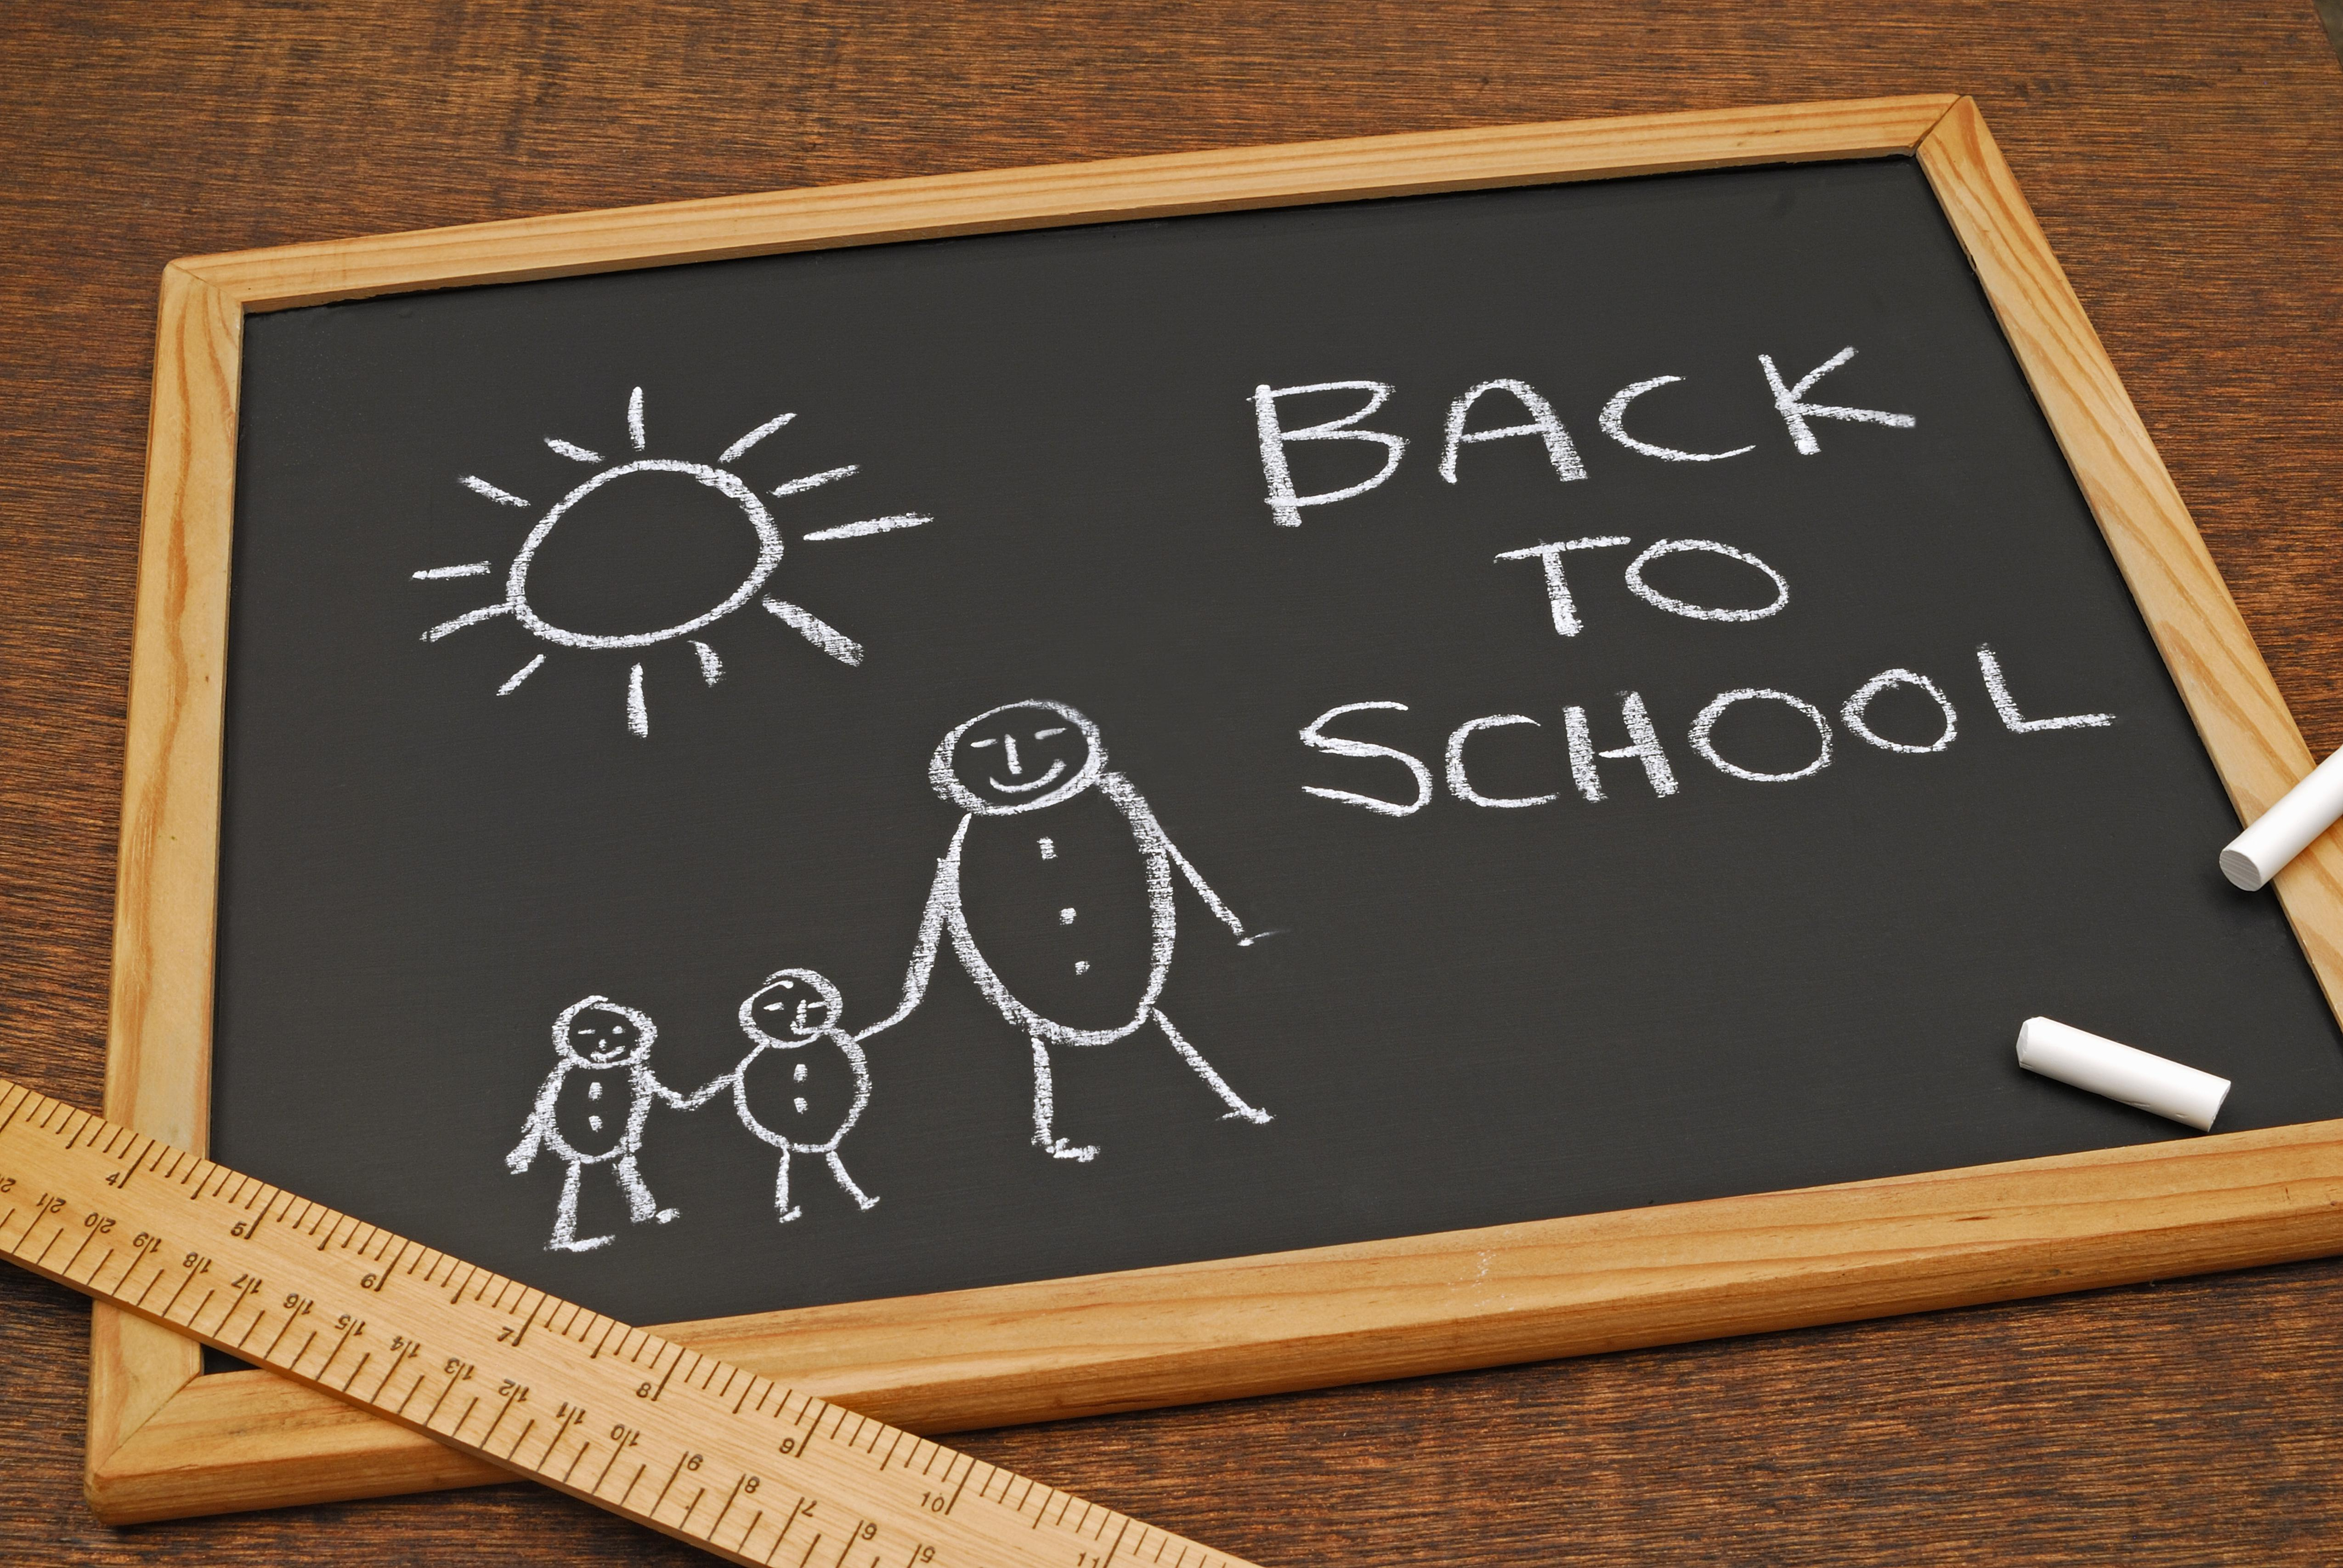 Back to school on a school slate